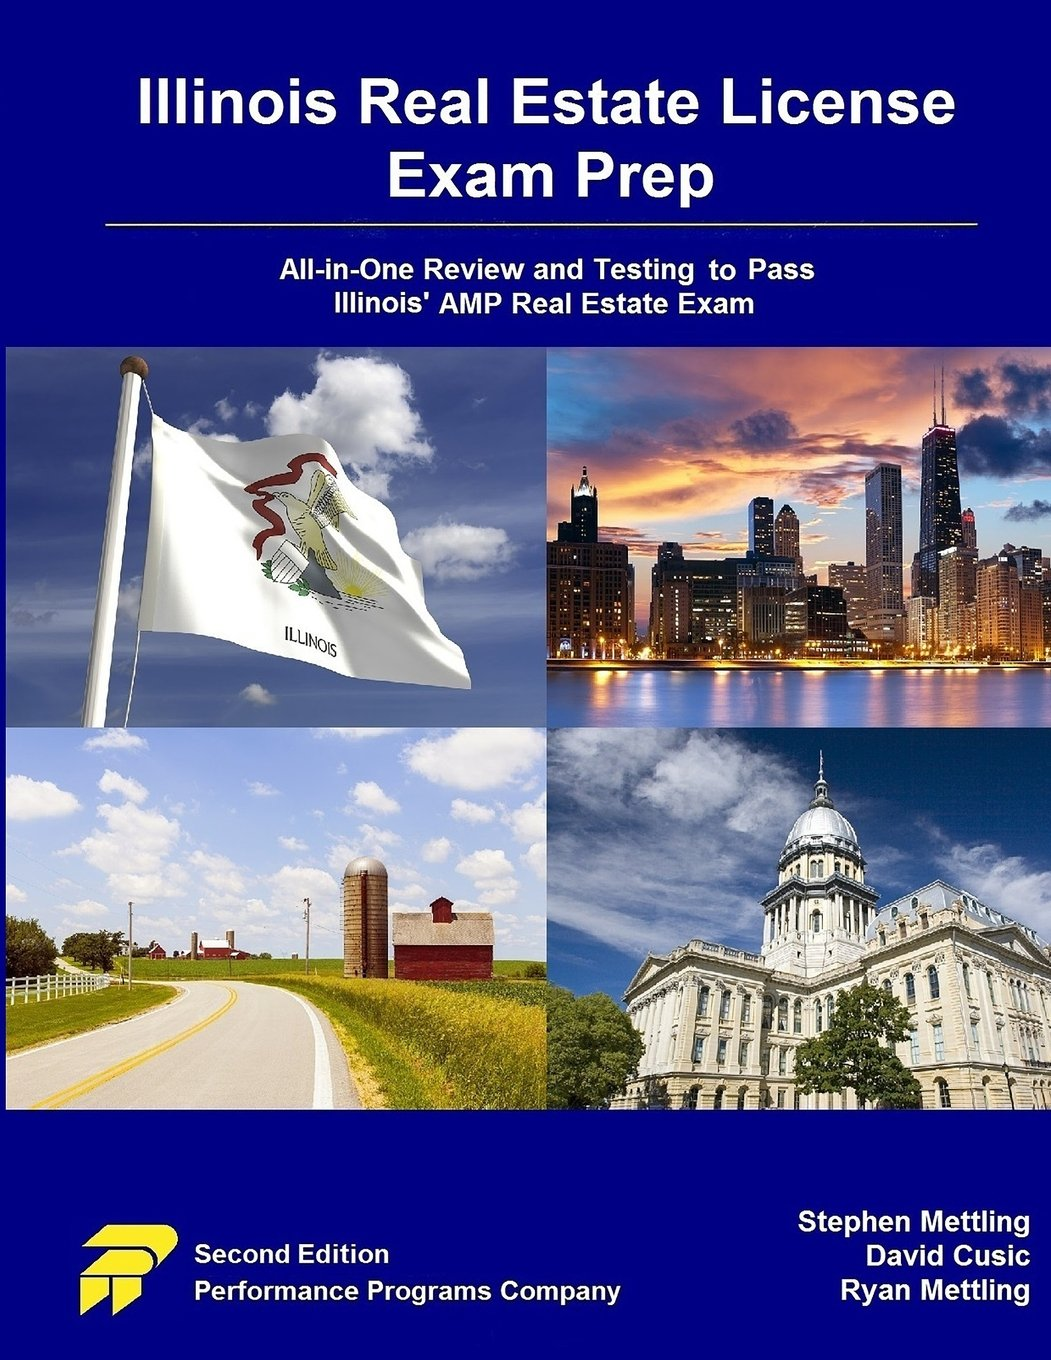 Download Illinois Real Estate License Exam Prep: All-in-One Review and Testing To Pass Illinois' AMP Real Estate Exam ebook